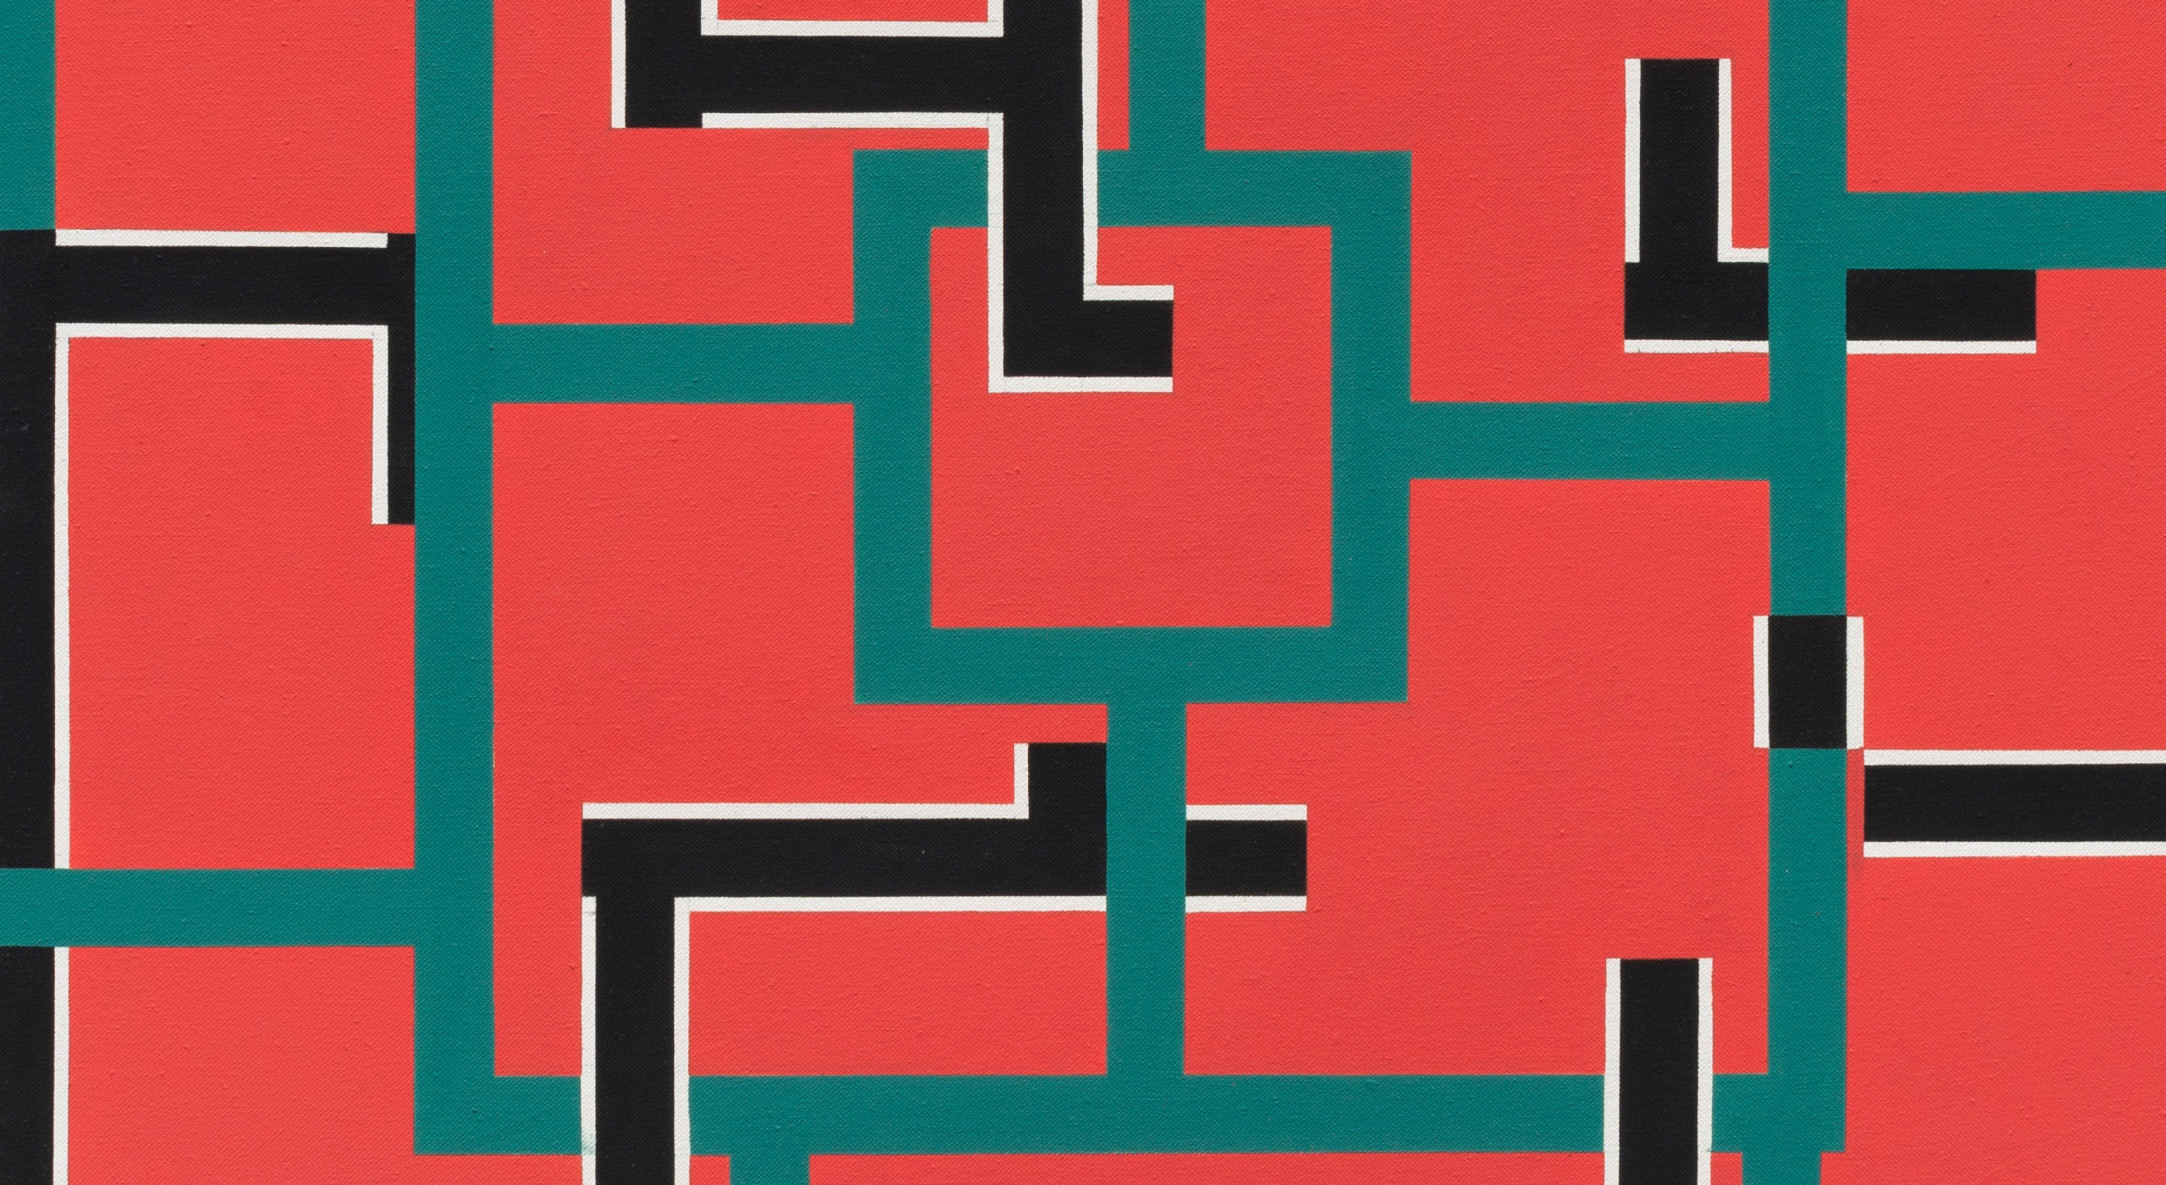 Detail of Mary Webb, Red, green, black and white, 1976